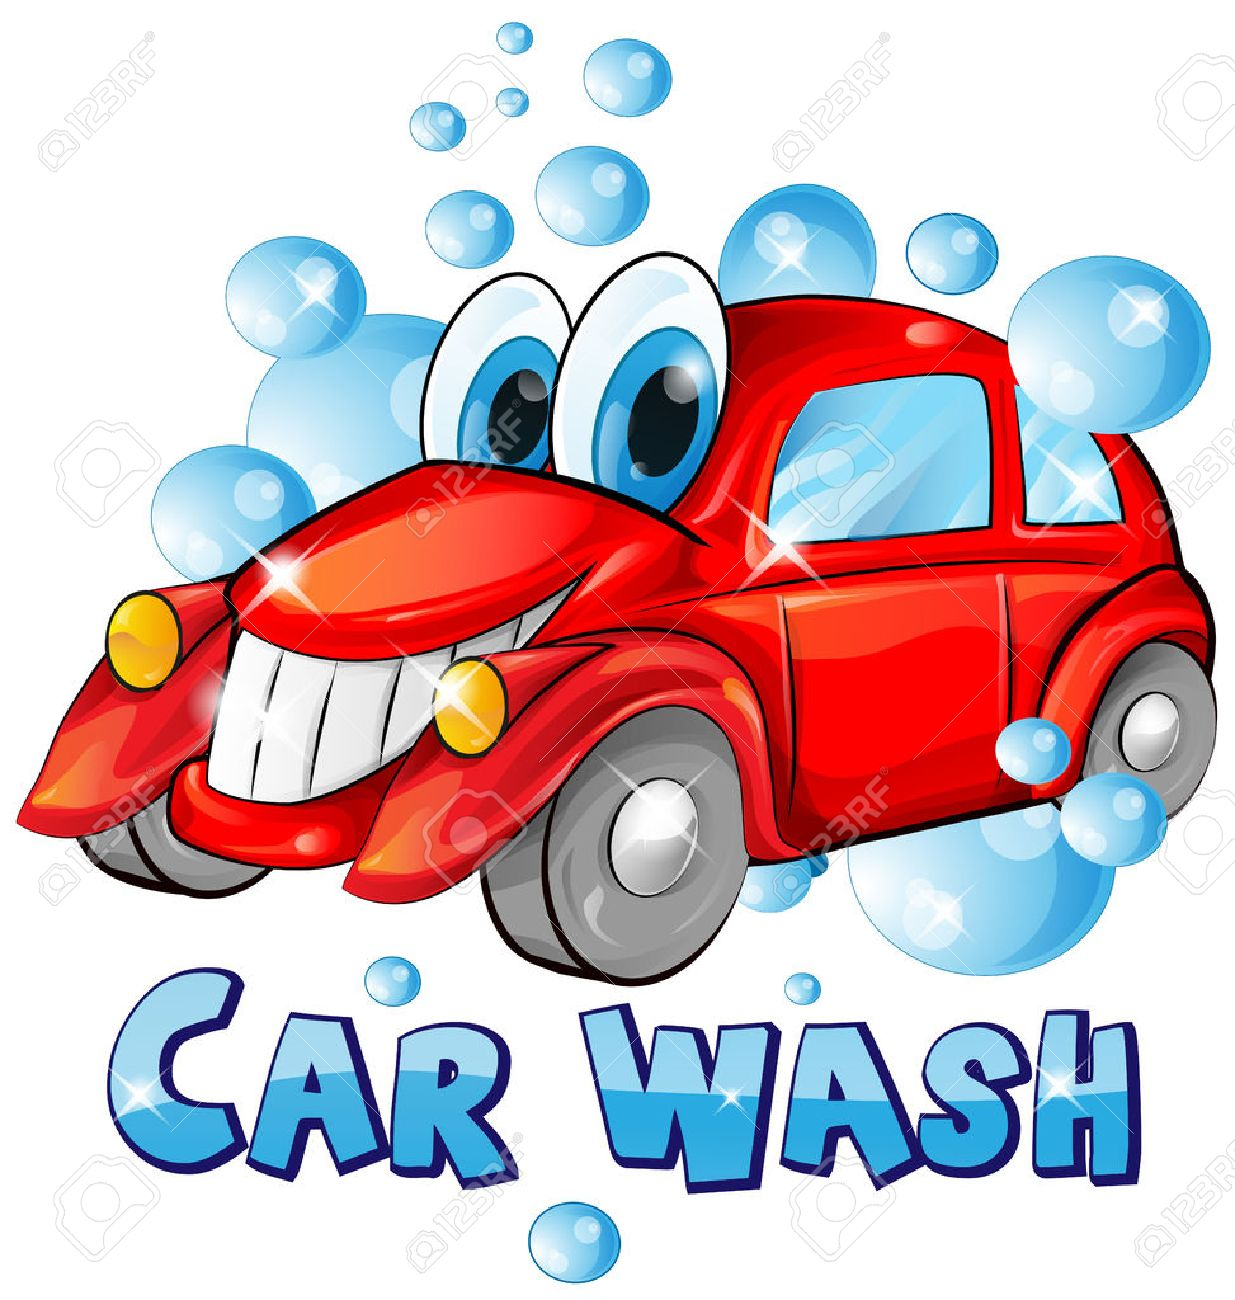 car wash cartoon isolated on white background royalty free cliparts rh 123rf com car wash vector rapid wash video car wash vector png